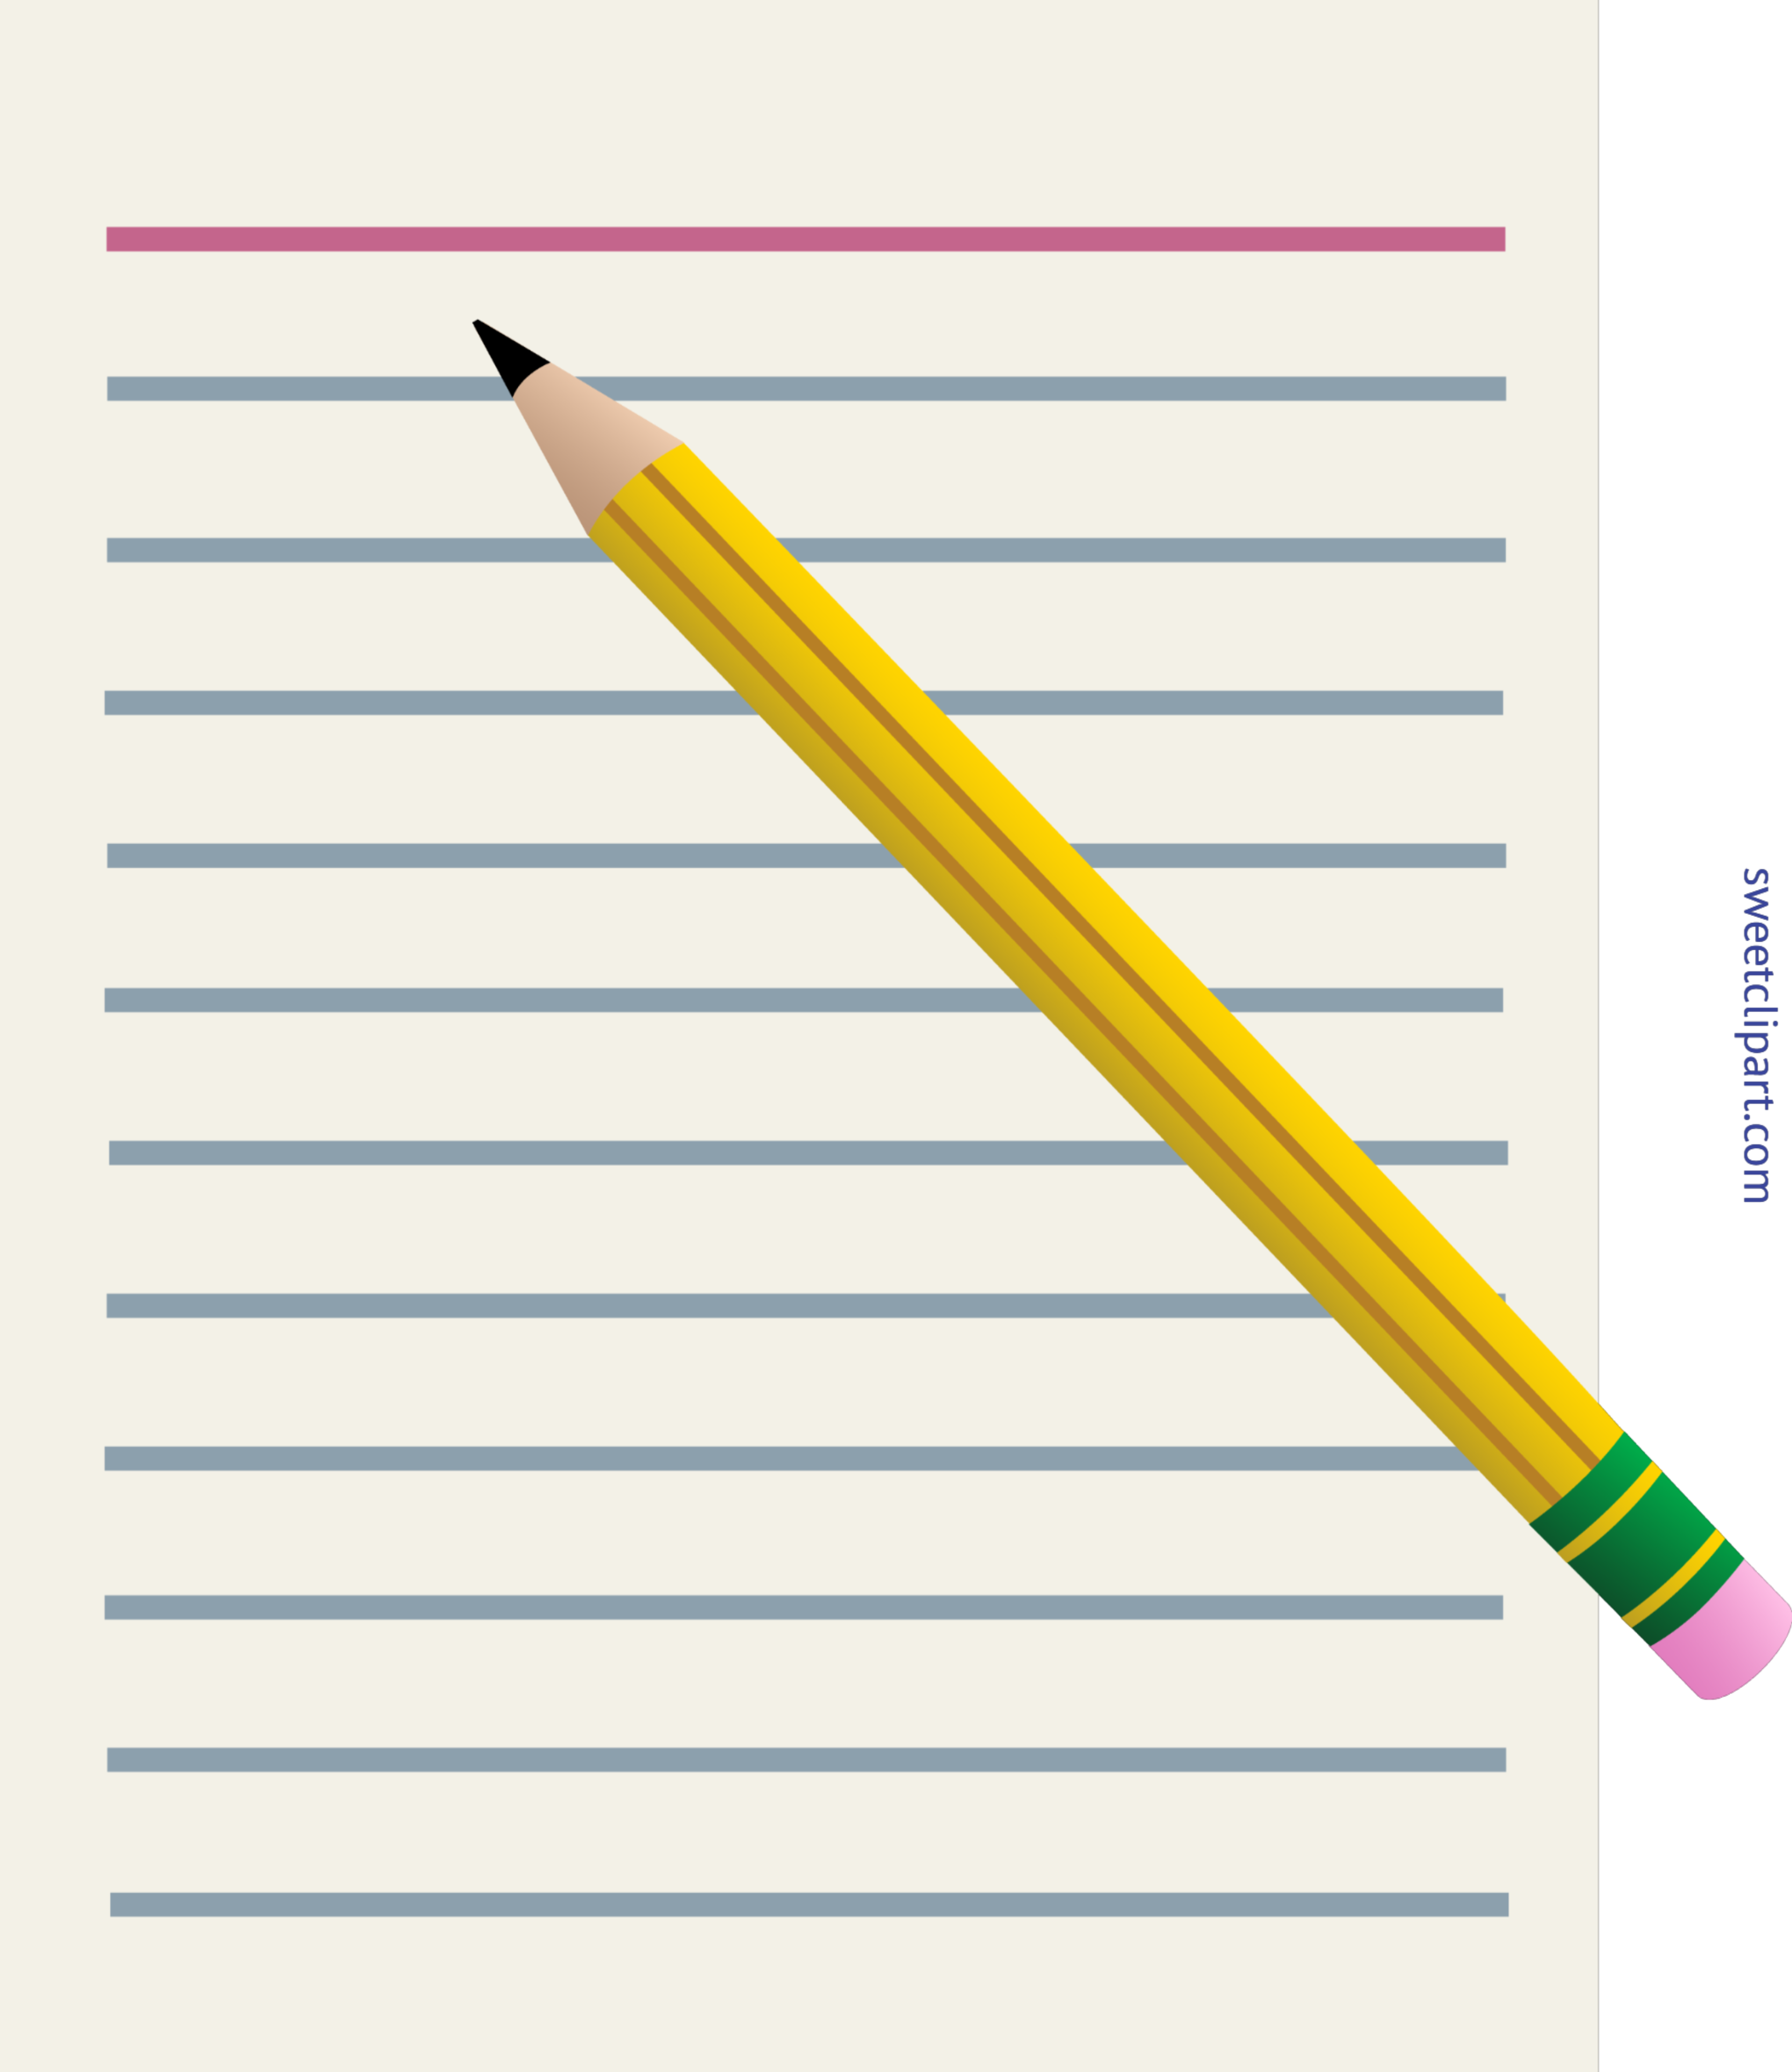 Office or School Paper and Pencil Clip Art.